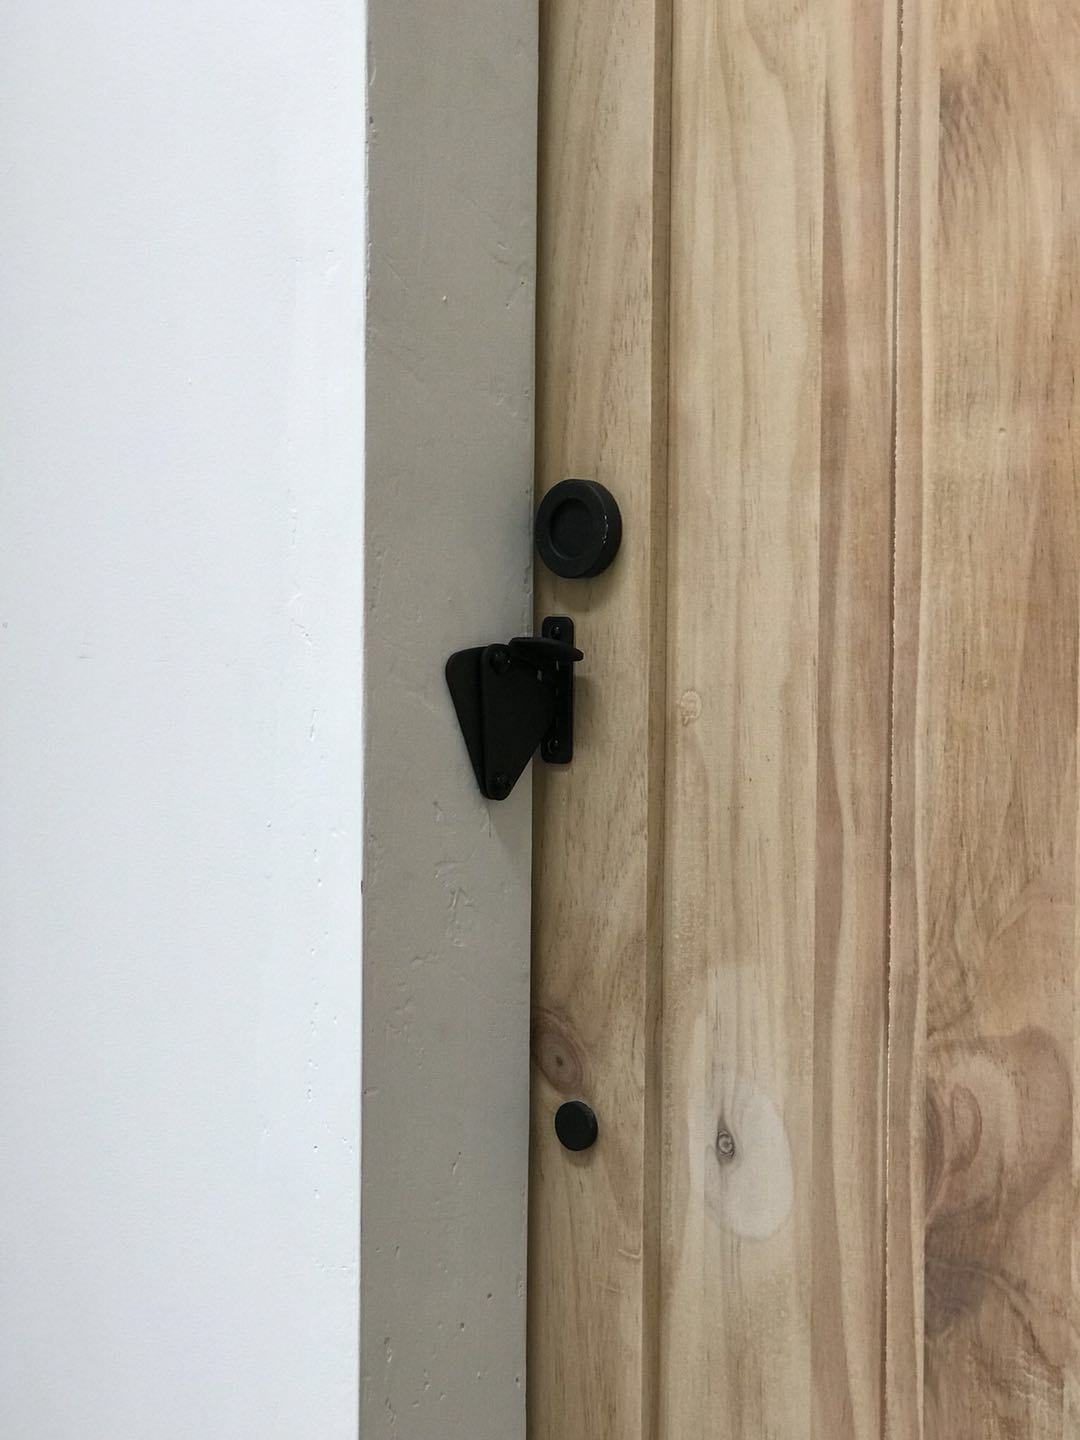 Black Sliding Barn Door Privacy Lock | Australia Barn Door Expert